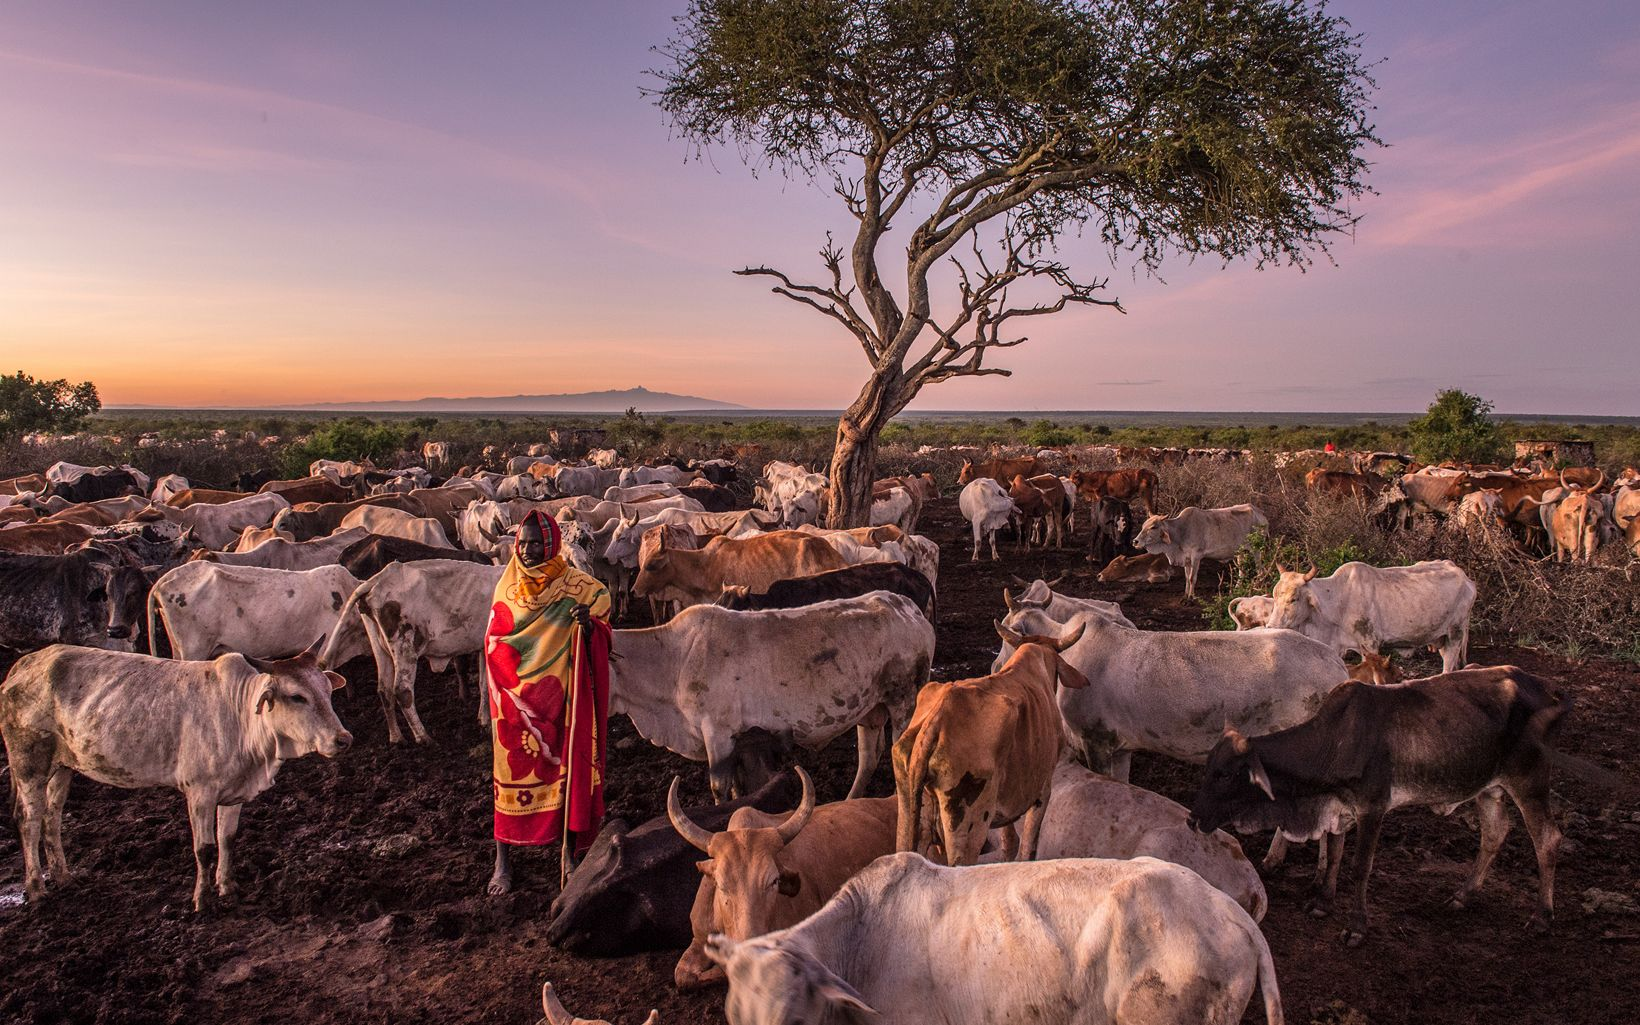 Sakakei Naiptari prepares to milk his cows at Loisaba Conservancy.